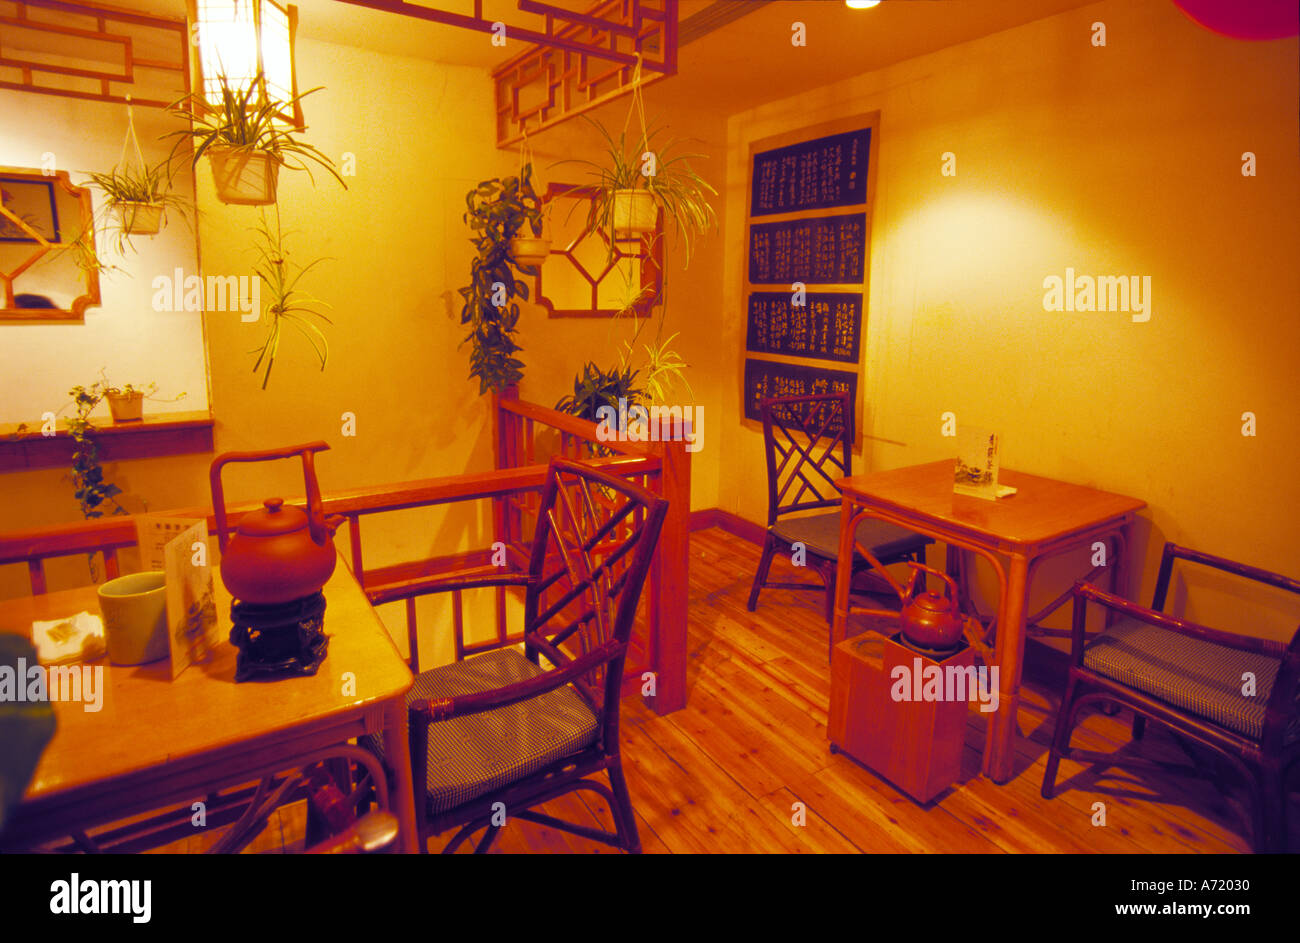 9b2bba26cf2c Tea house in hangzhou westlake china trend trendy travel lifestyle  fashionable popularity popular